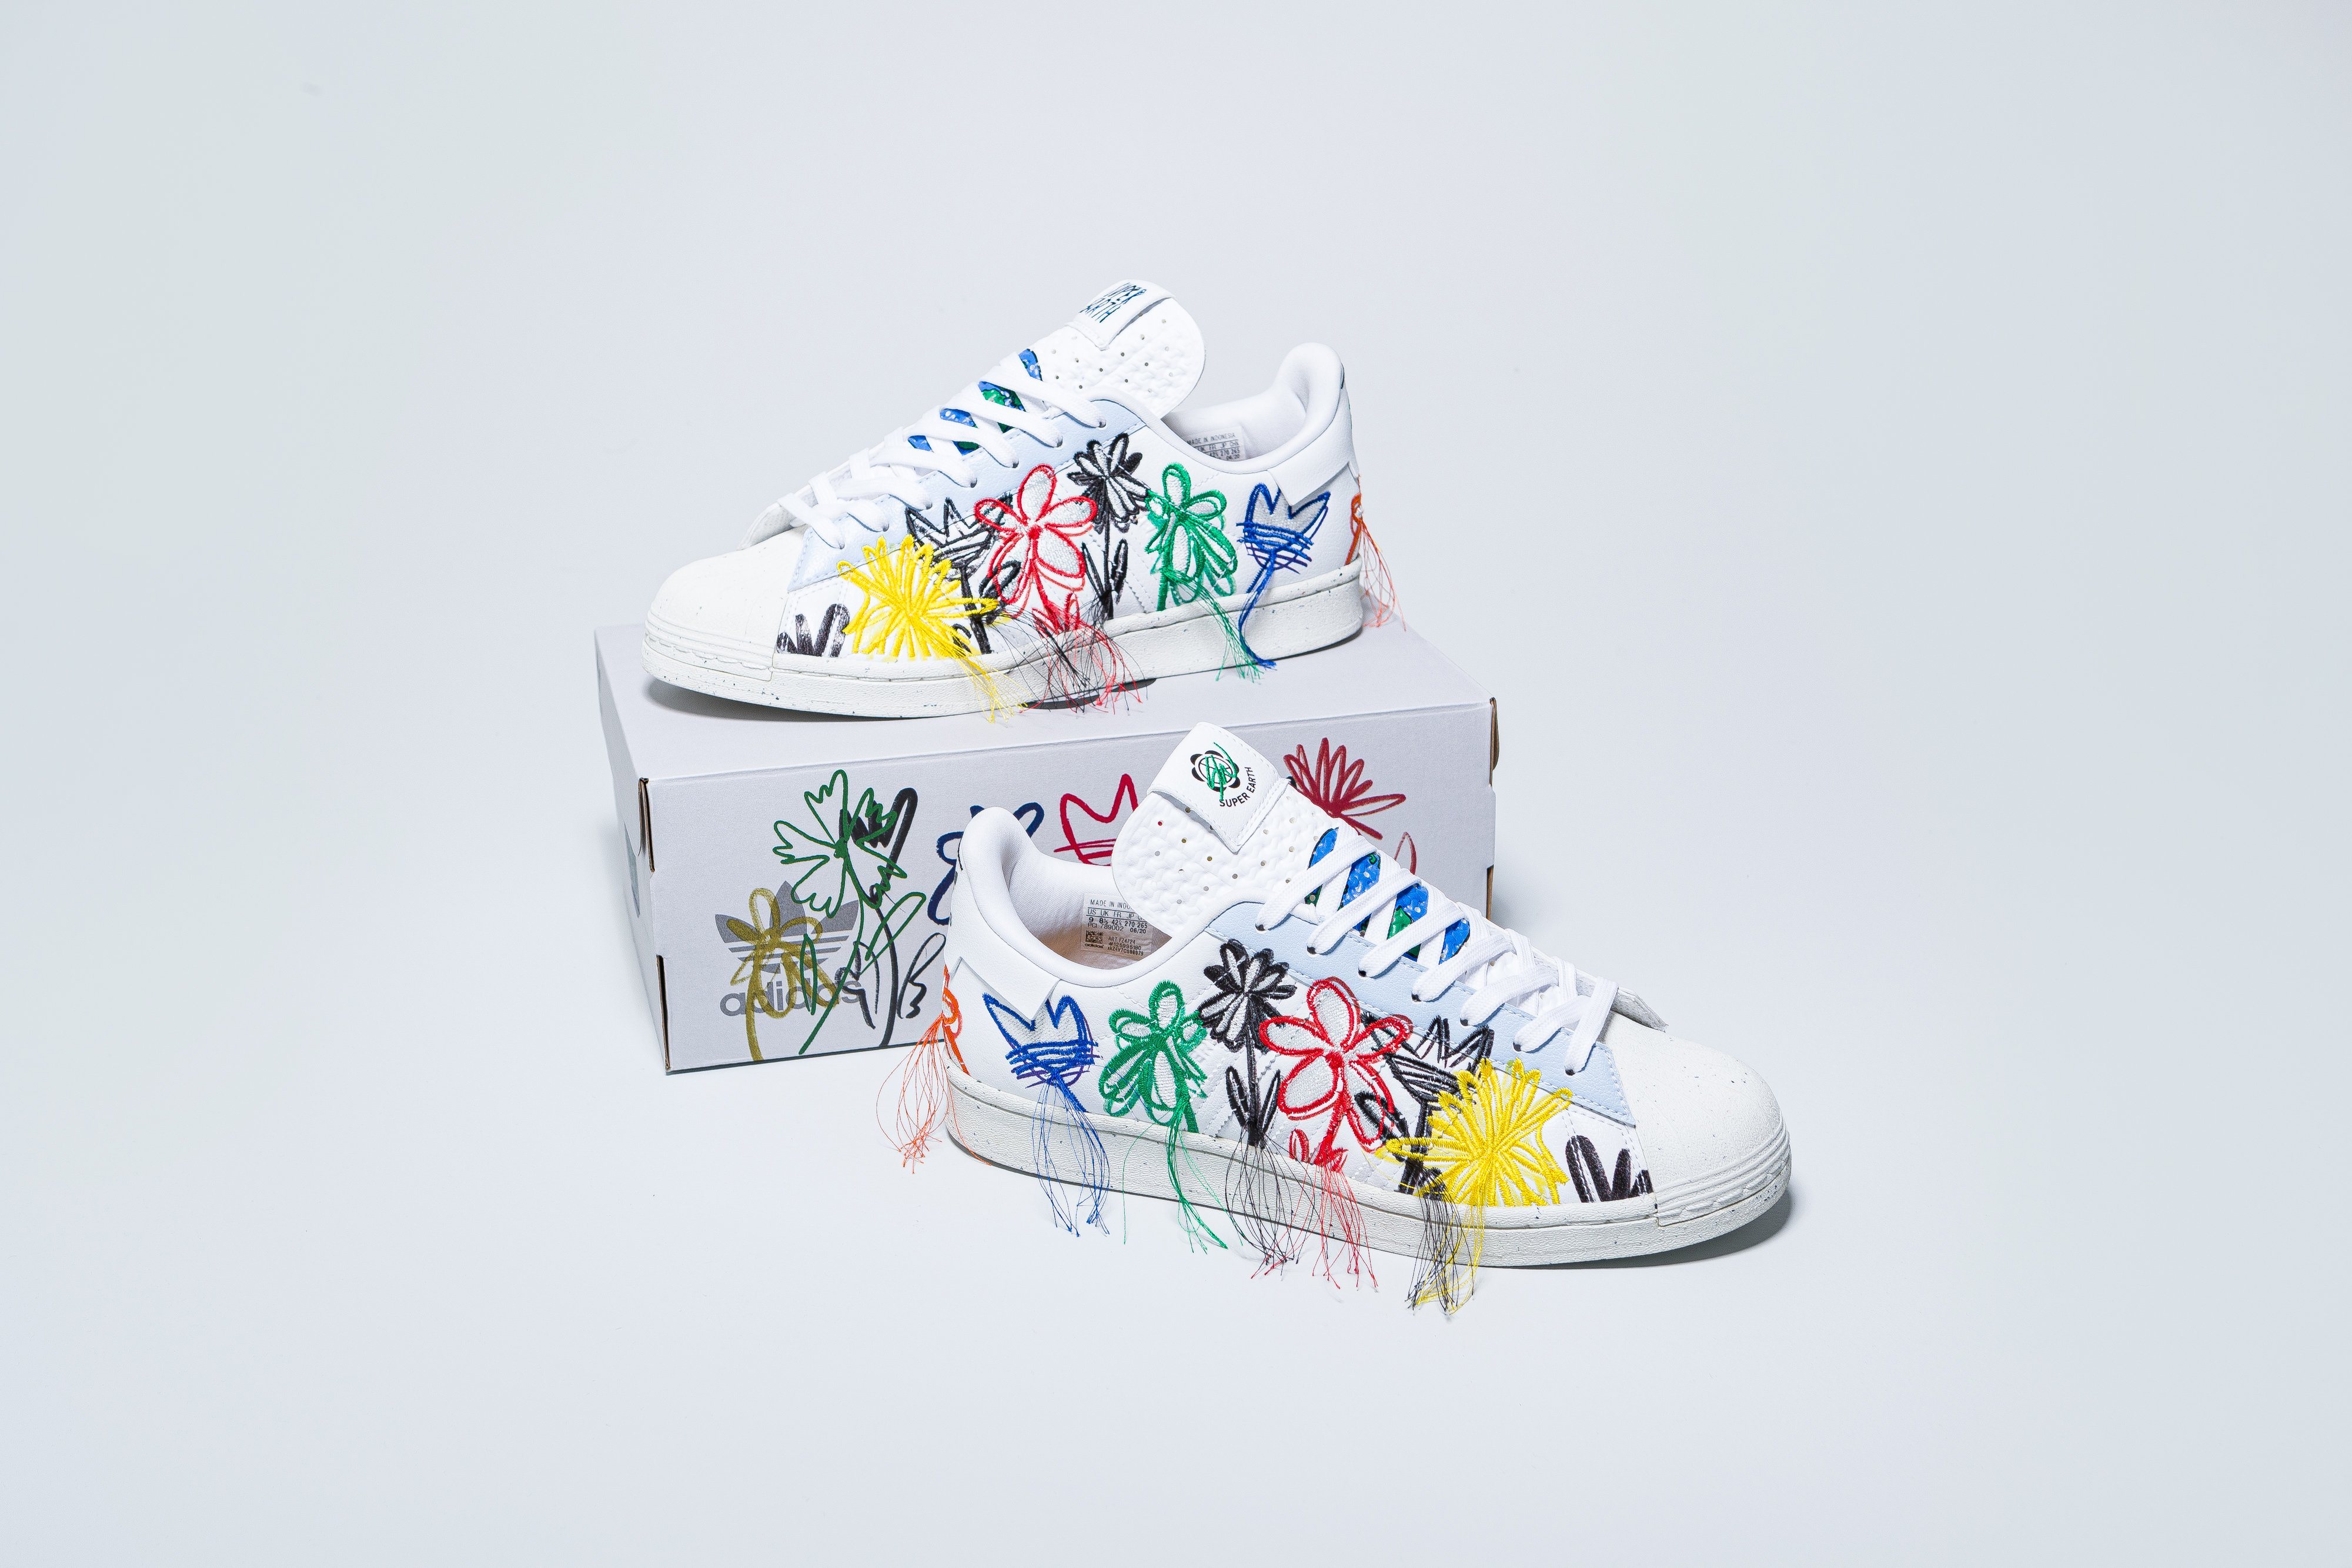 adidas - Superstar Superearth x Sean Wotherspoon - Footwear White/Footwear White - Up There